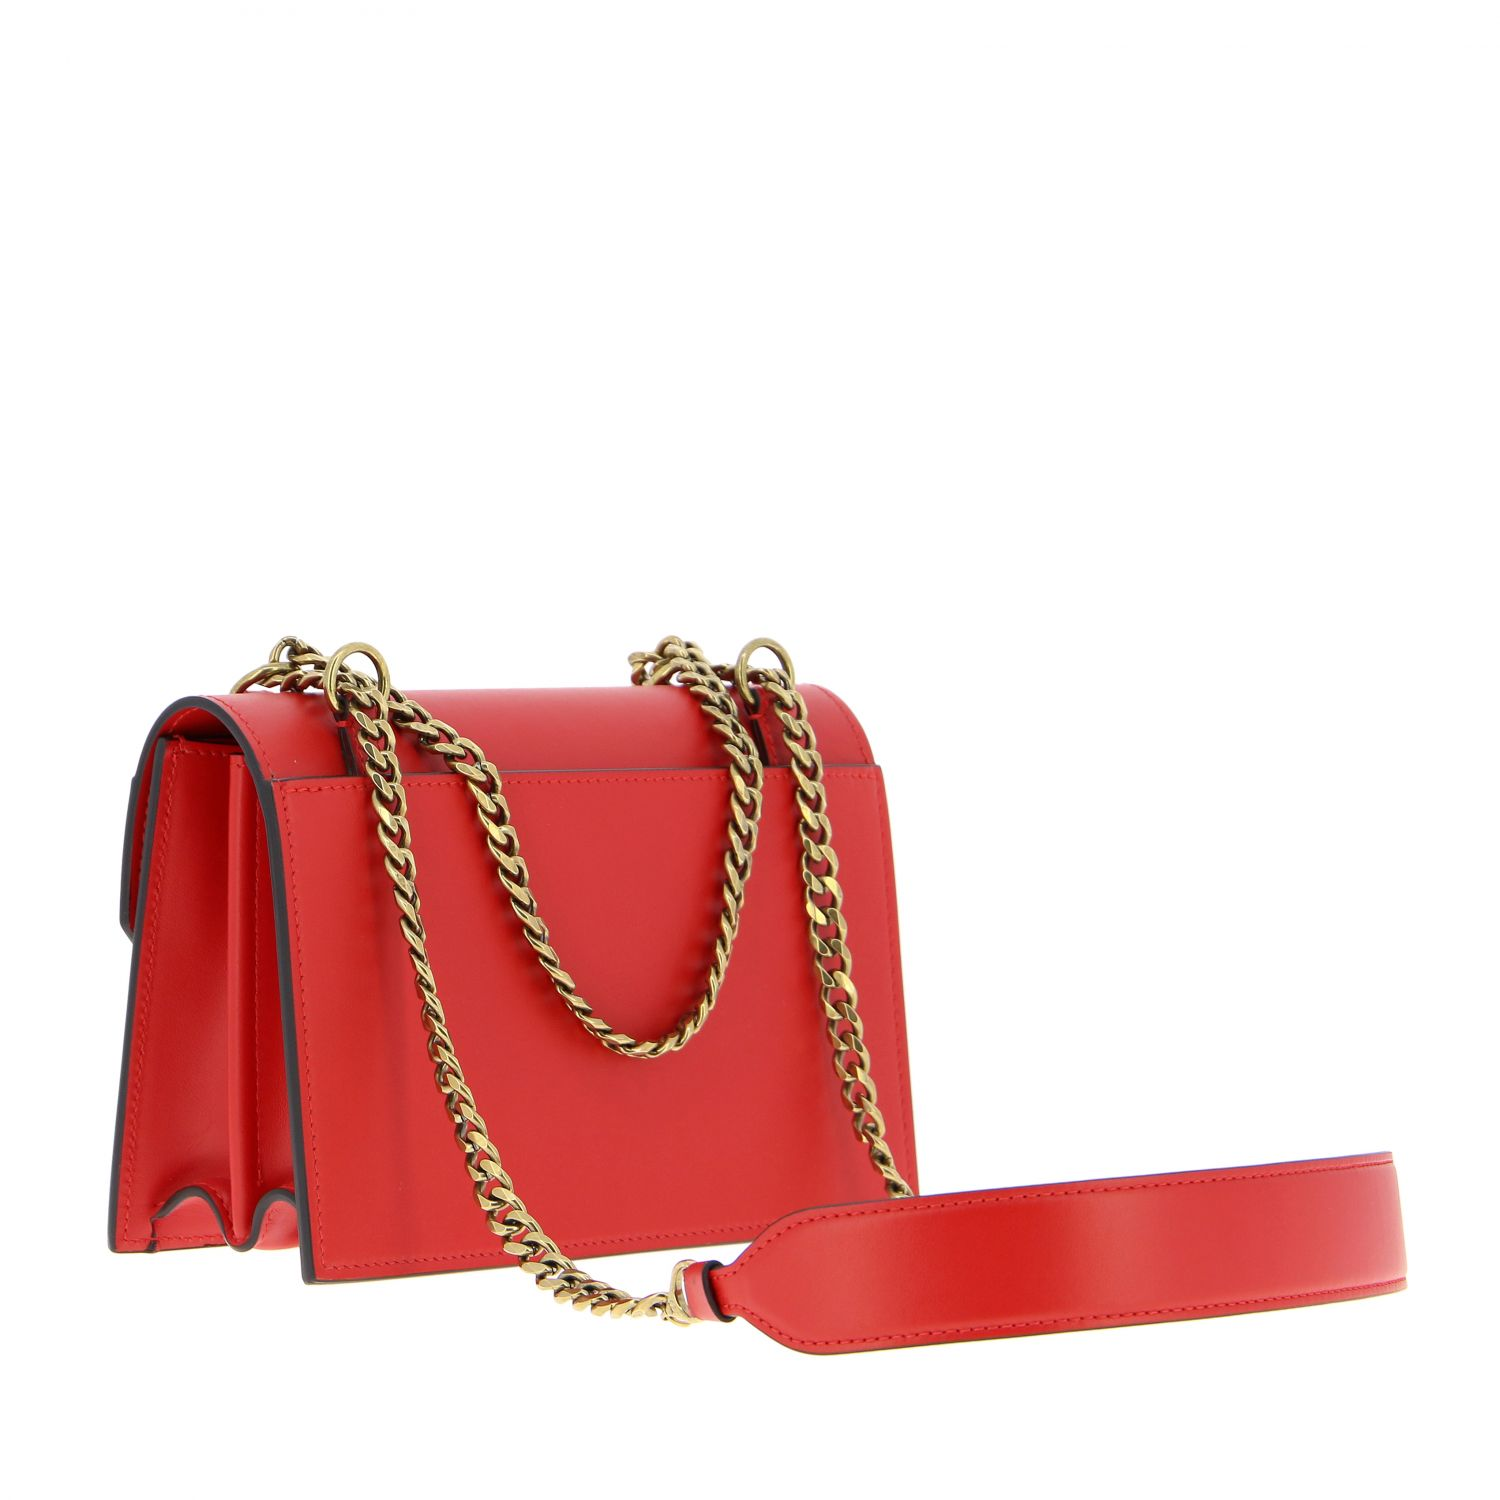 Elisa Christian Louboutin leather bag red 3